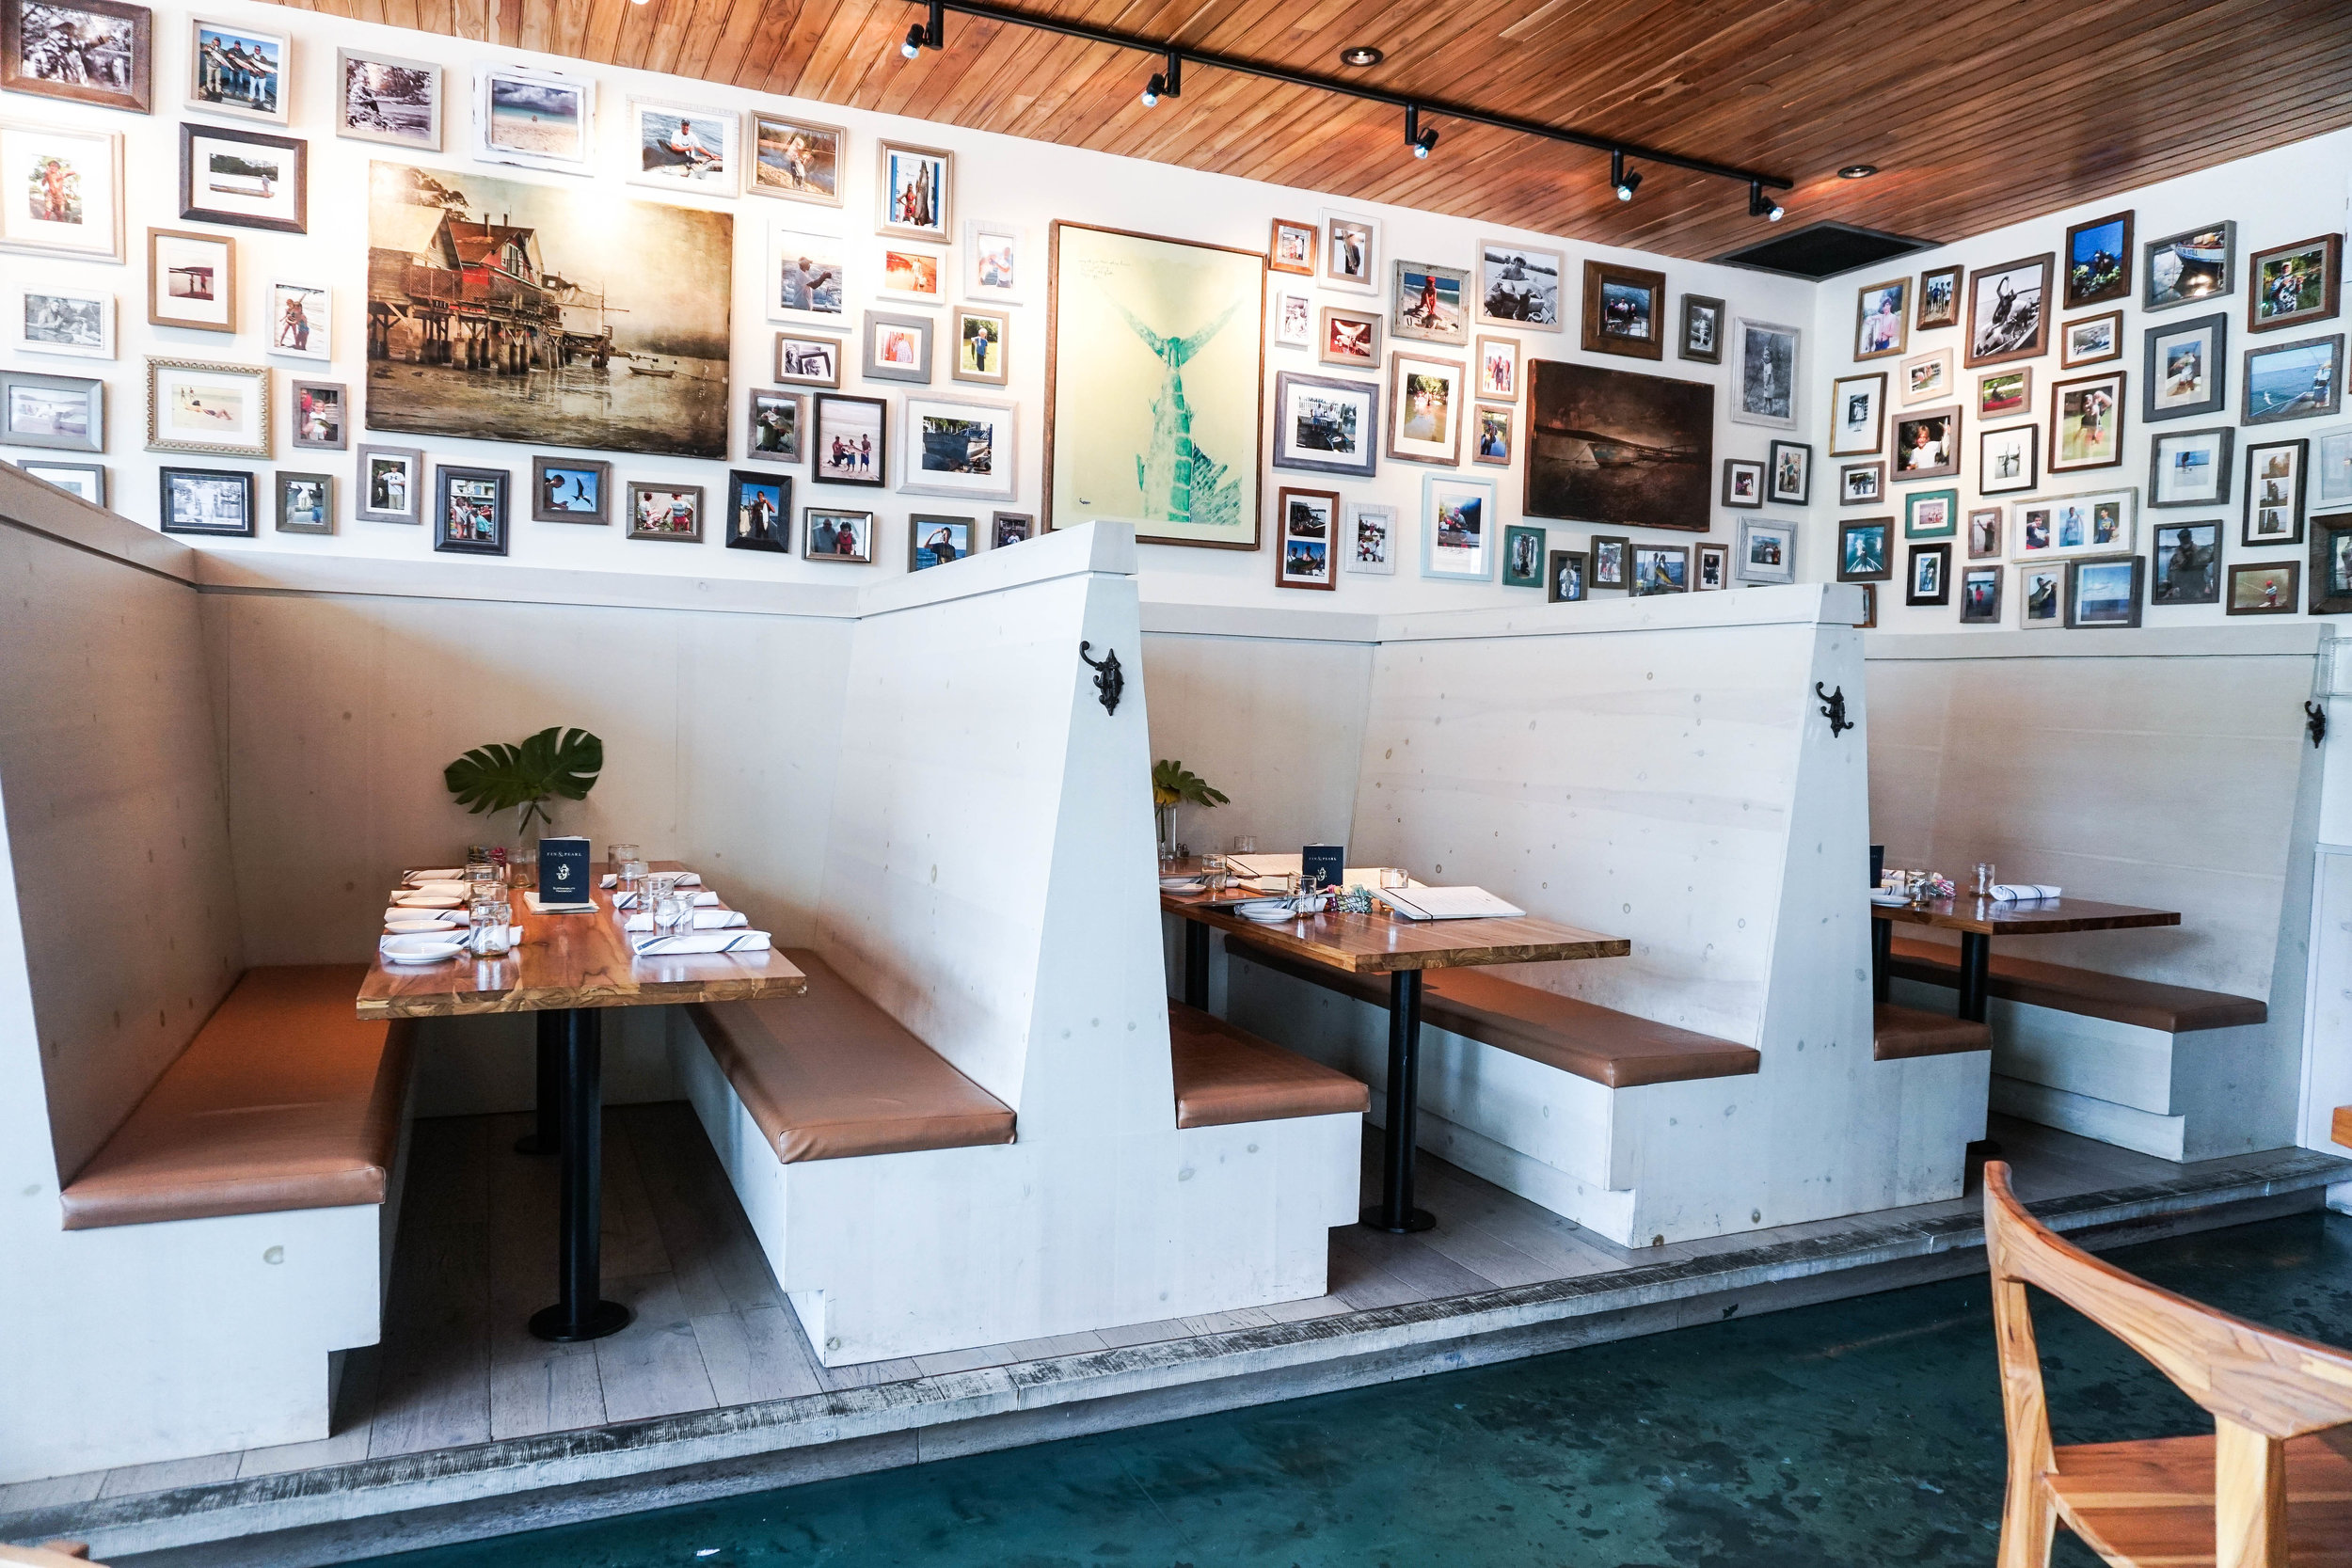 where-to-eat-in-the-gulch-nashville-fin-and-pearl.jpg